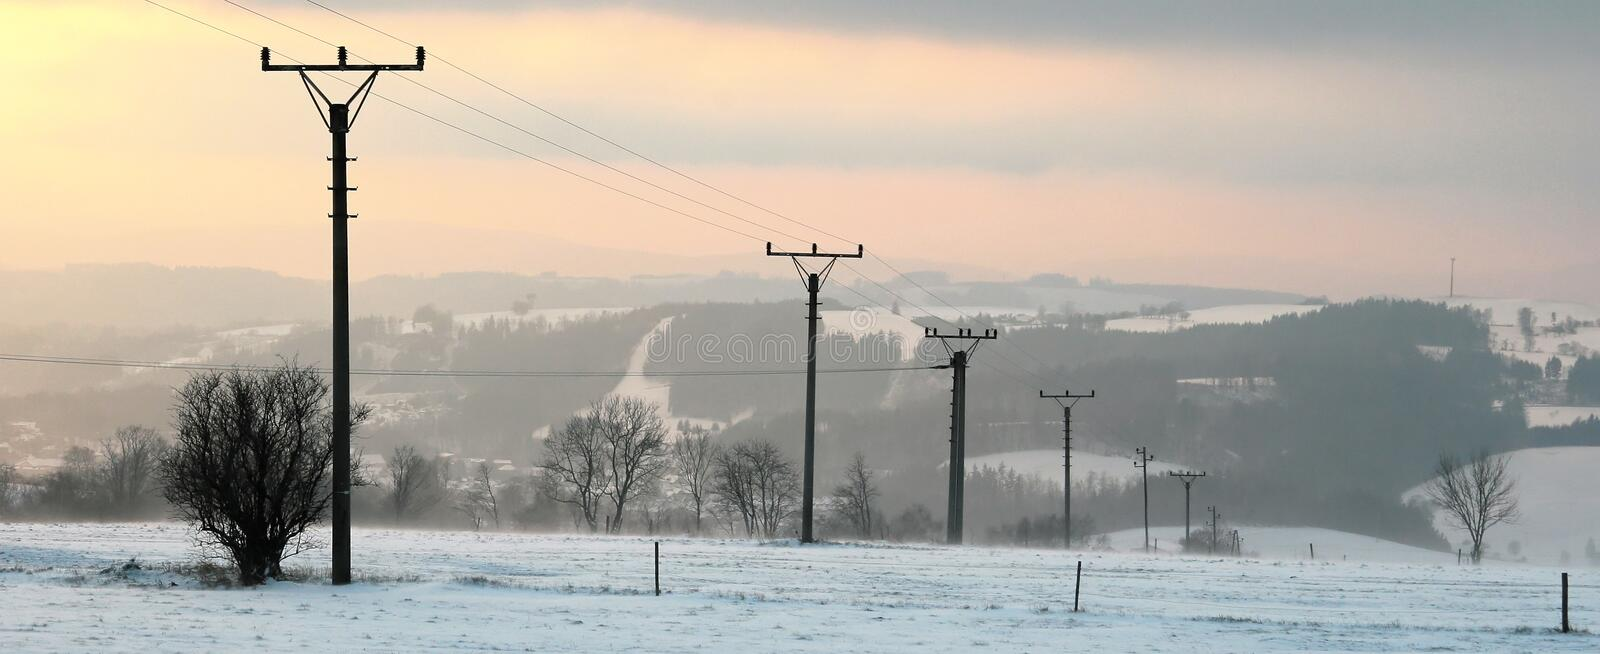 Electric line in the winter. Electric line on the snow-covered hill royalty free stock photography